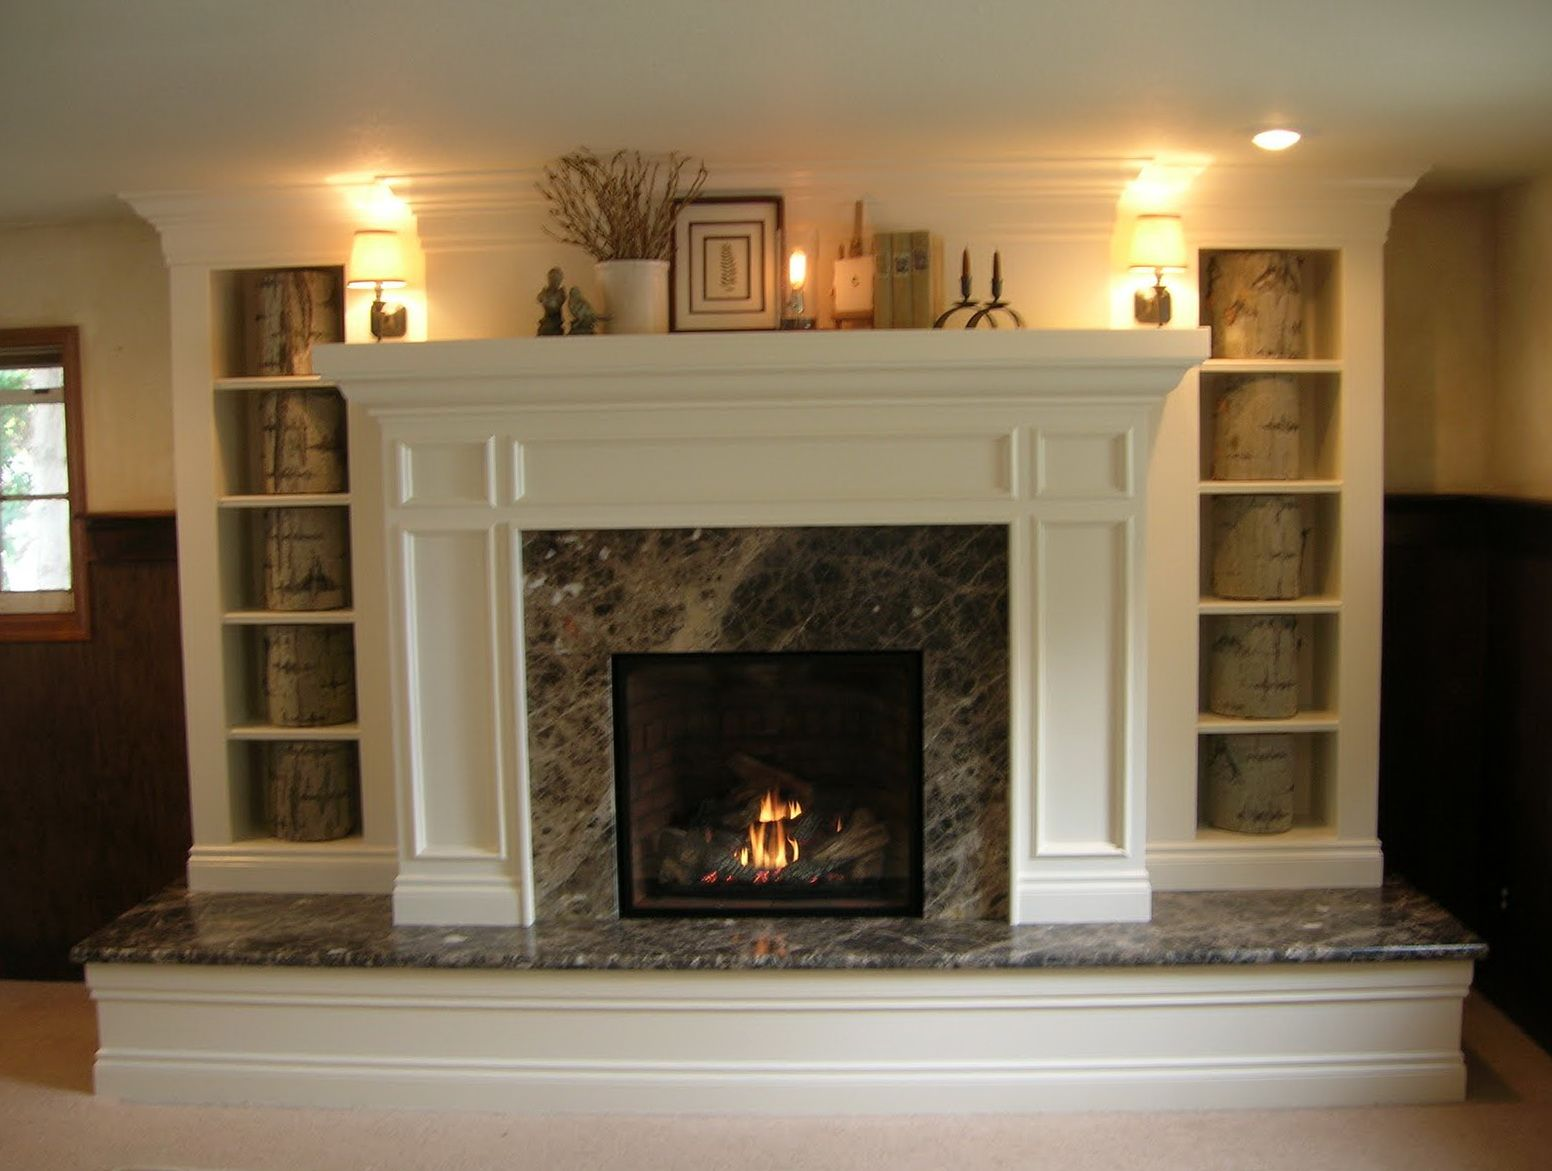 Fireplace Design With Raised Hearth